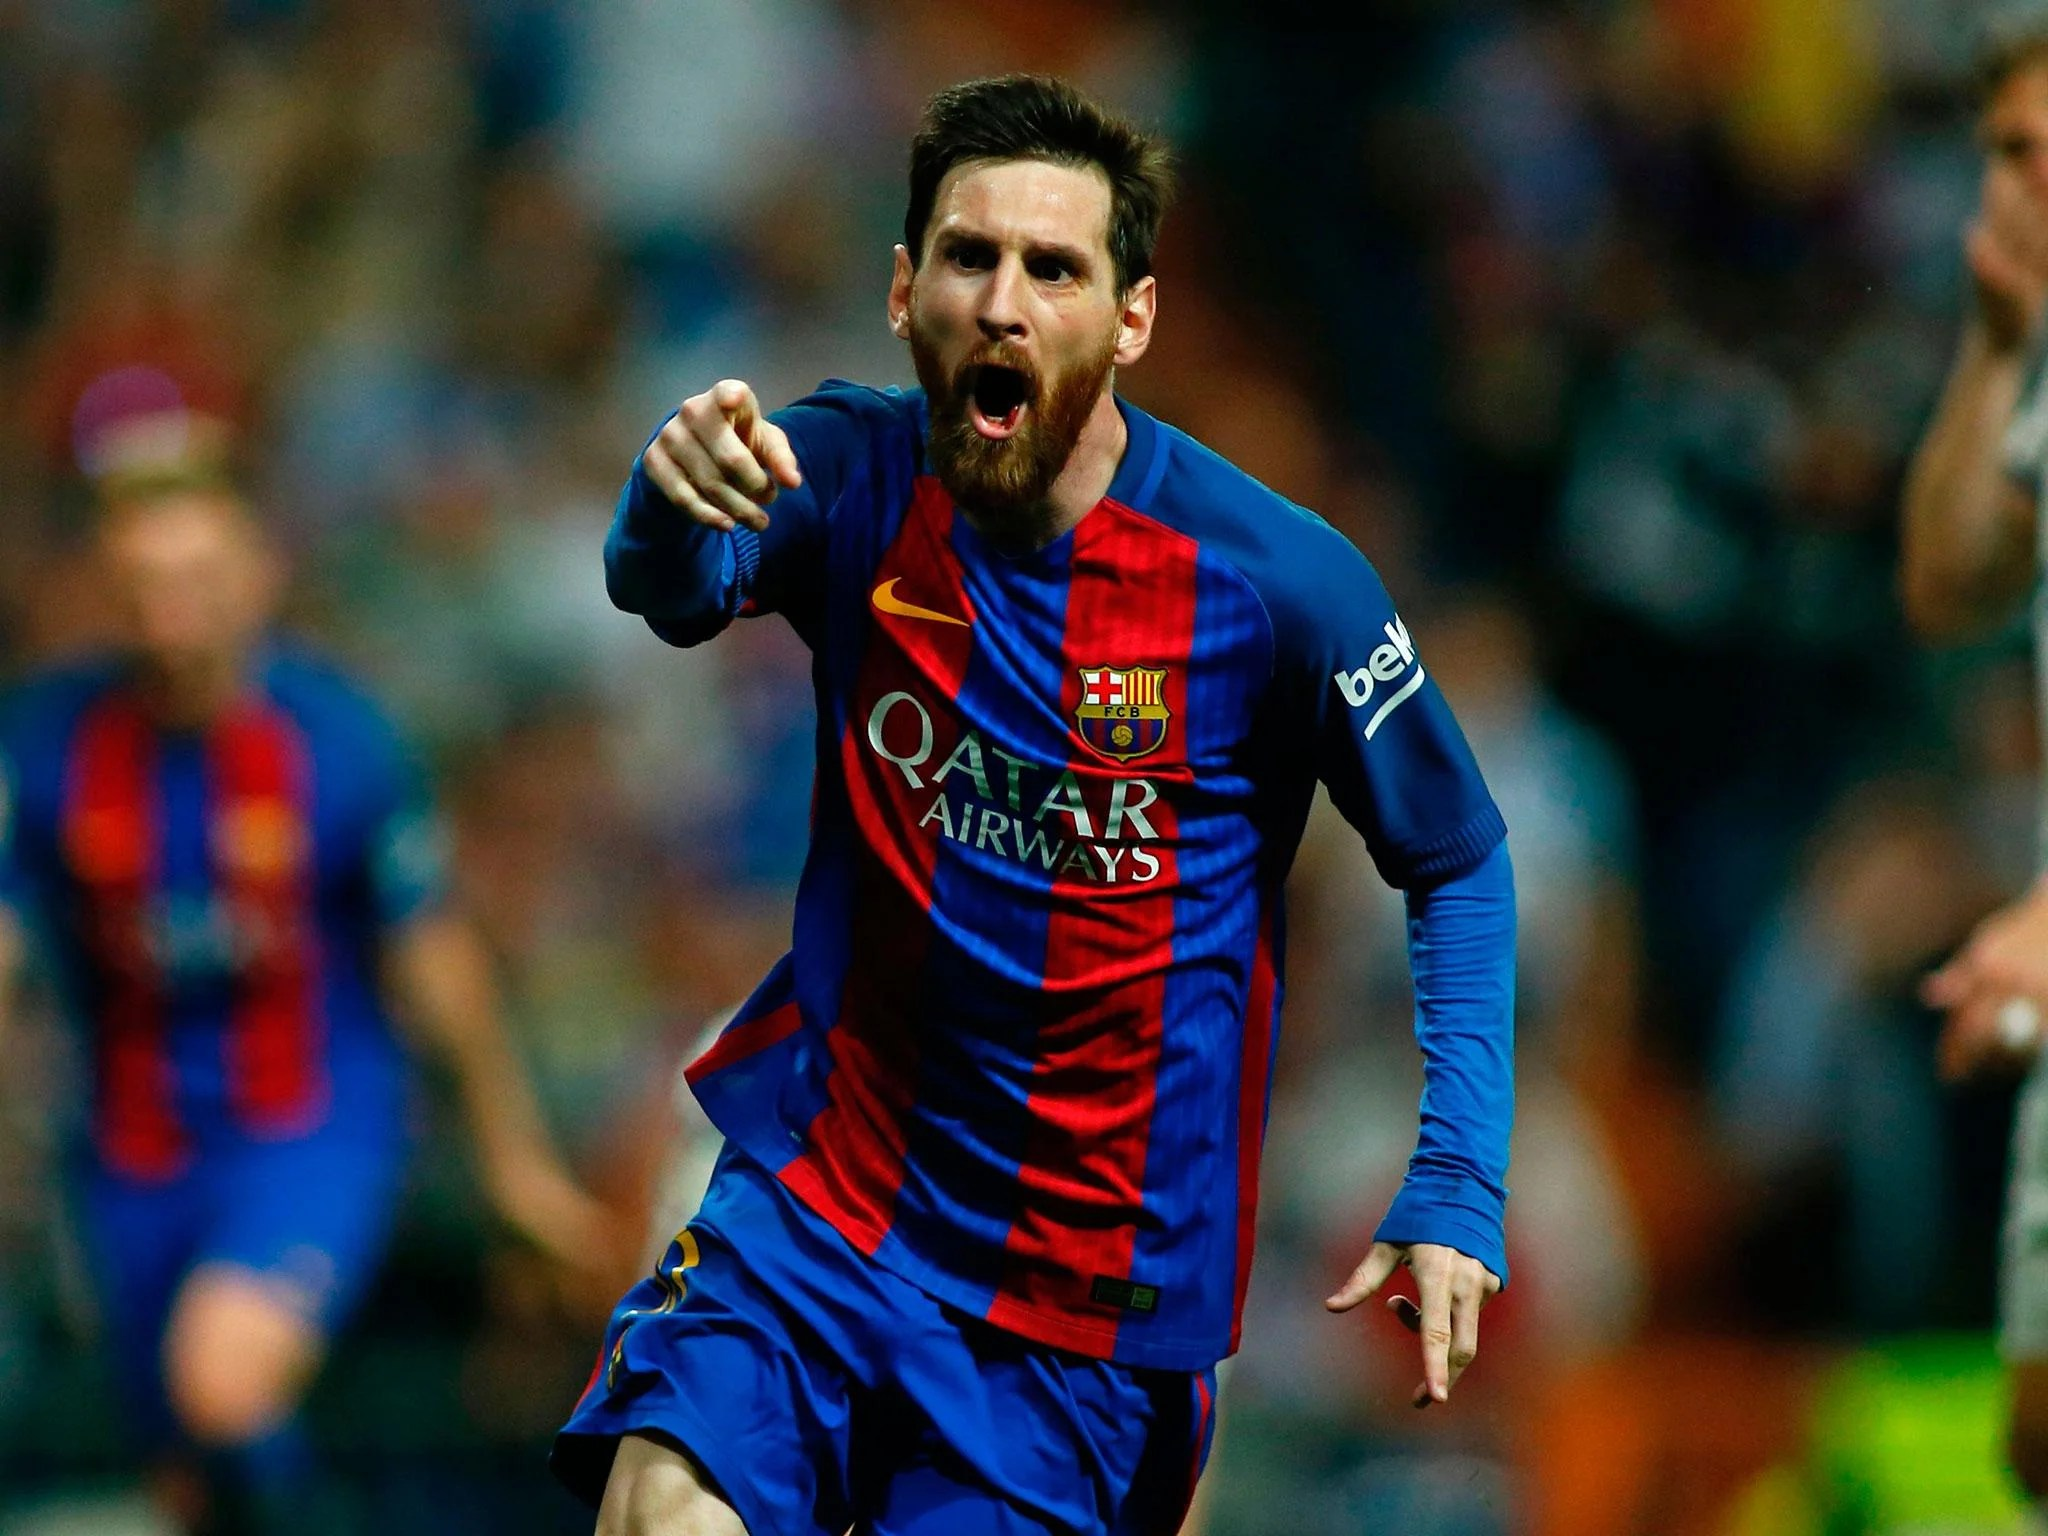 Leo Messi Lionel Messi Plans To Open Theme Park Based On Himself In